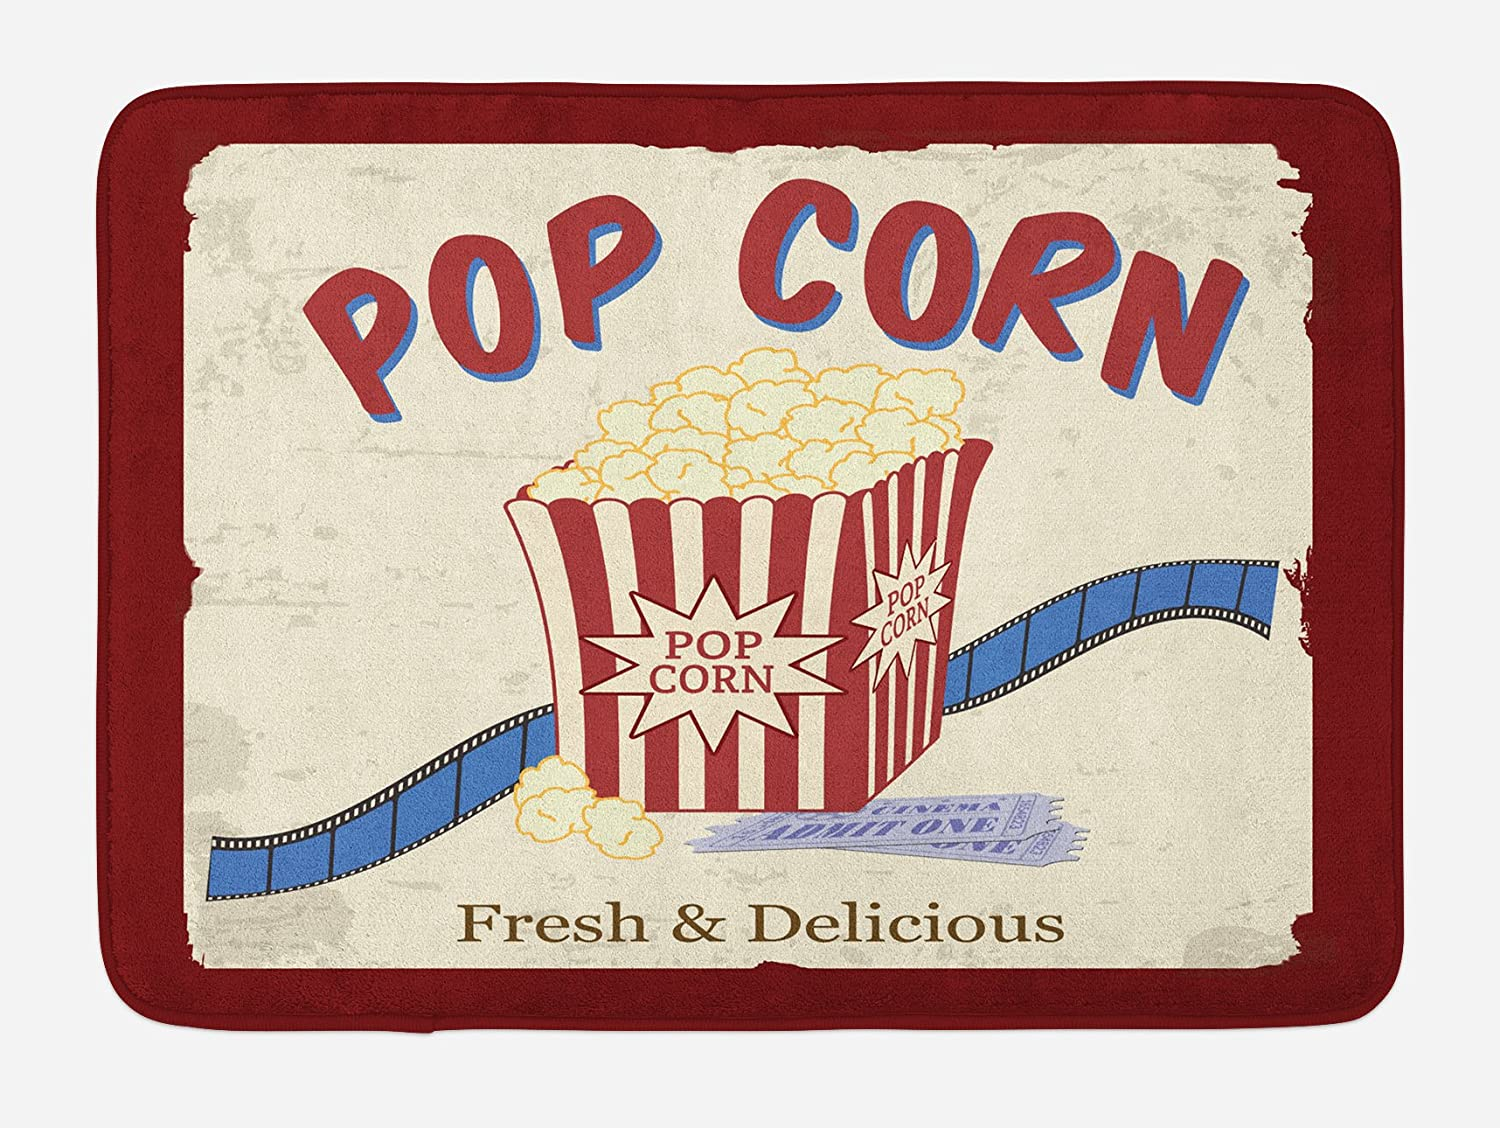 Ambesonne Movie Theater Bath Mat, Fresh and Delicious Pop Corn Film Tickets and Strip Advertising in 60s Theme, Plush Bathroom Decor Mat with Non Slip Backing, 29.5